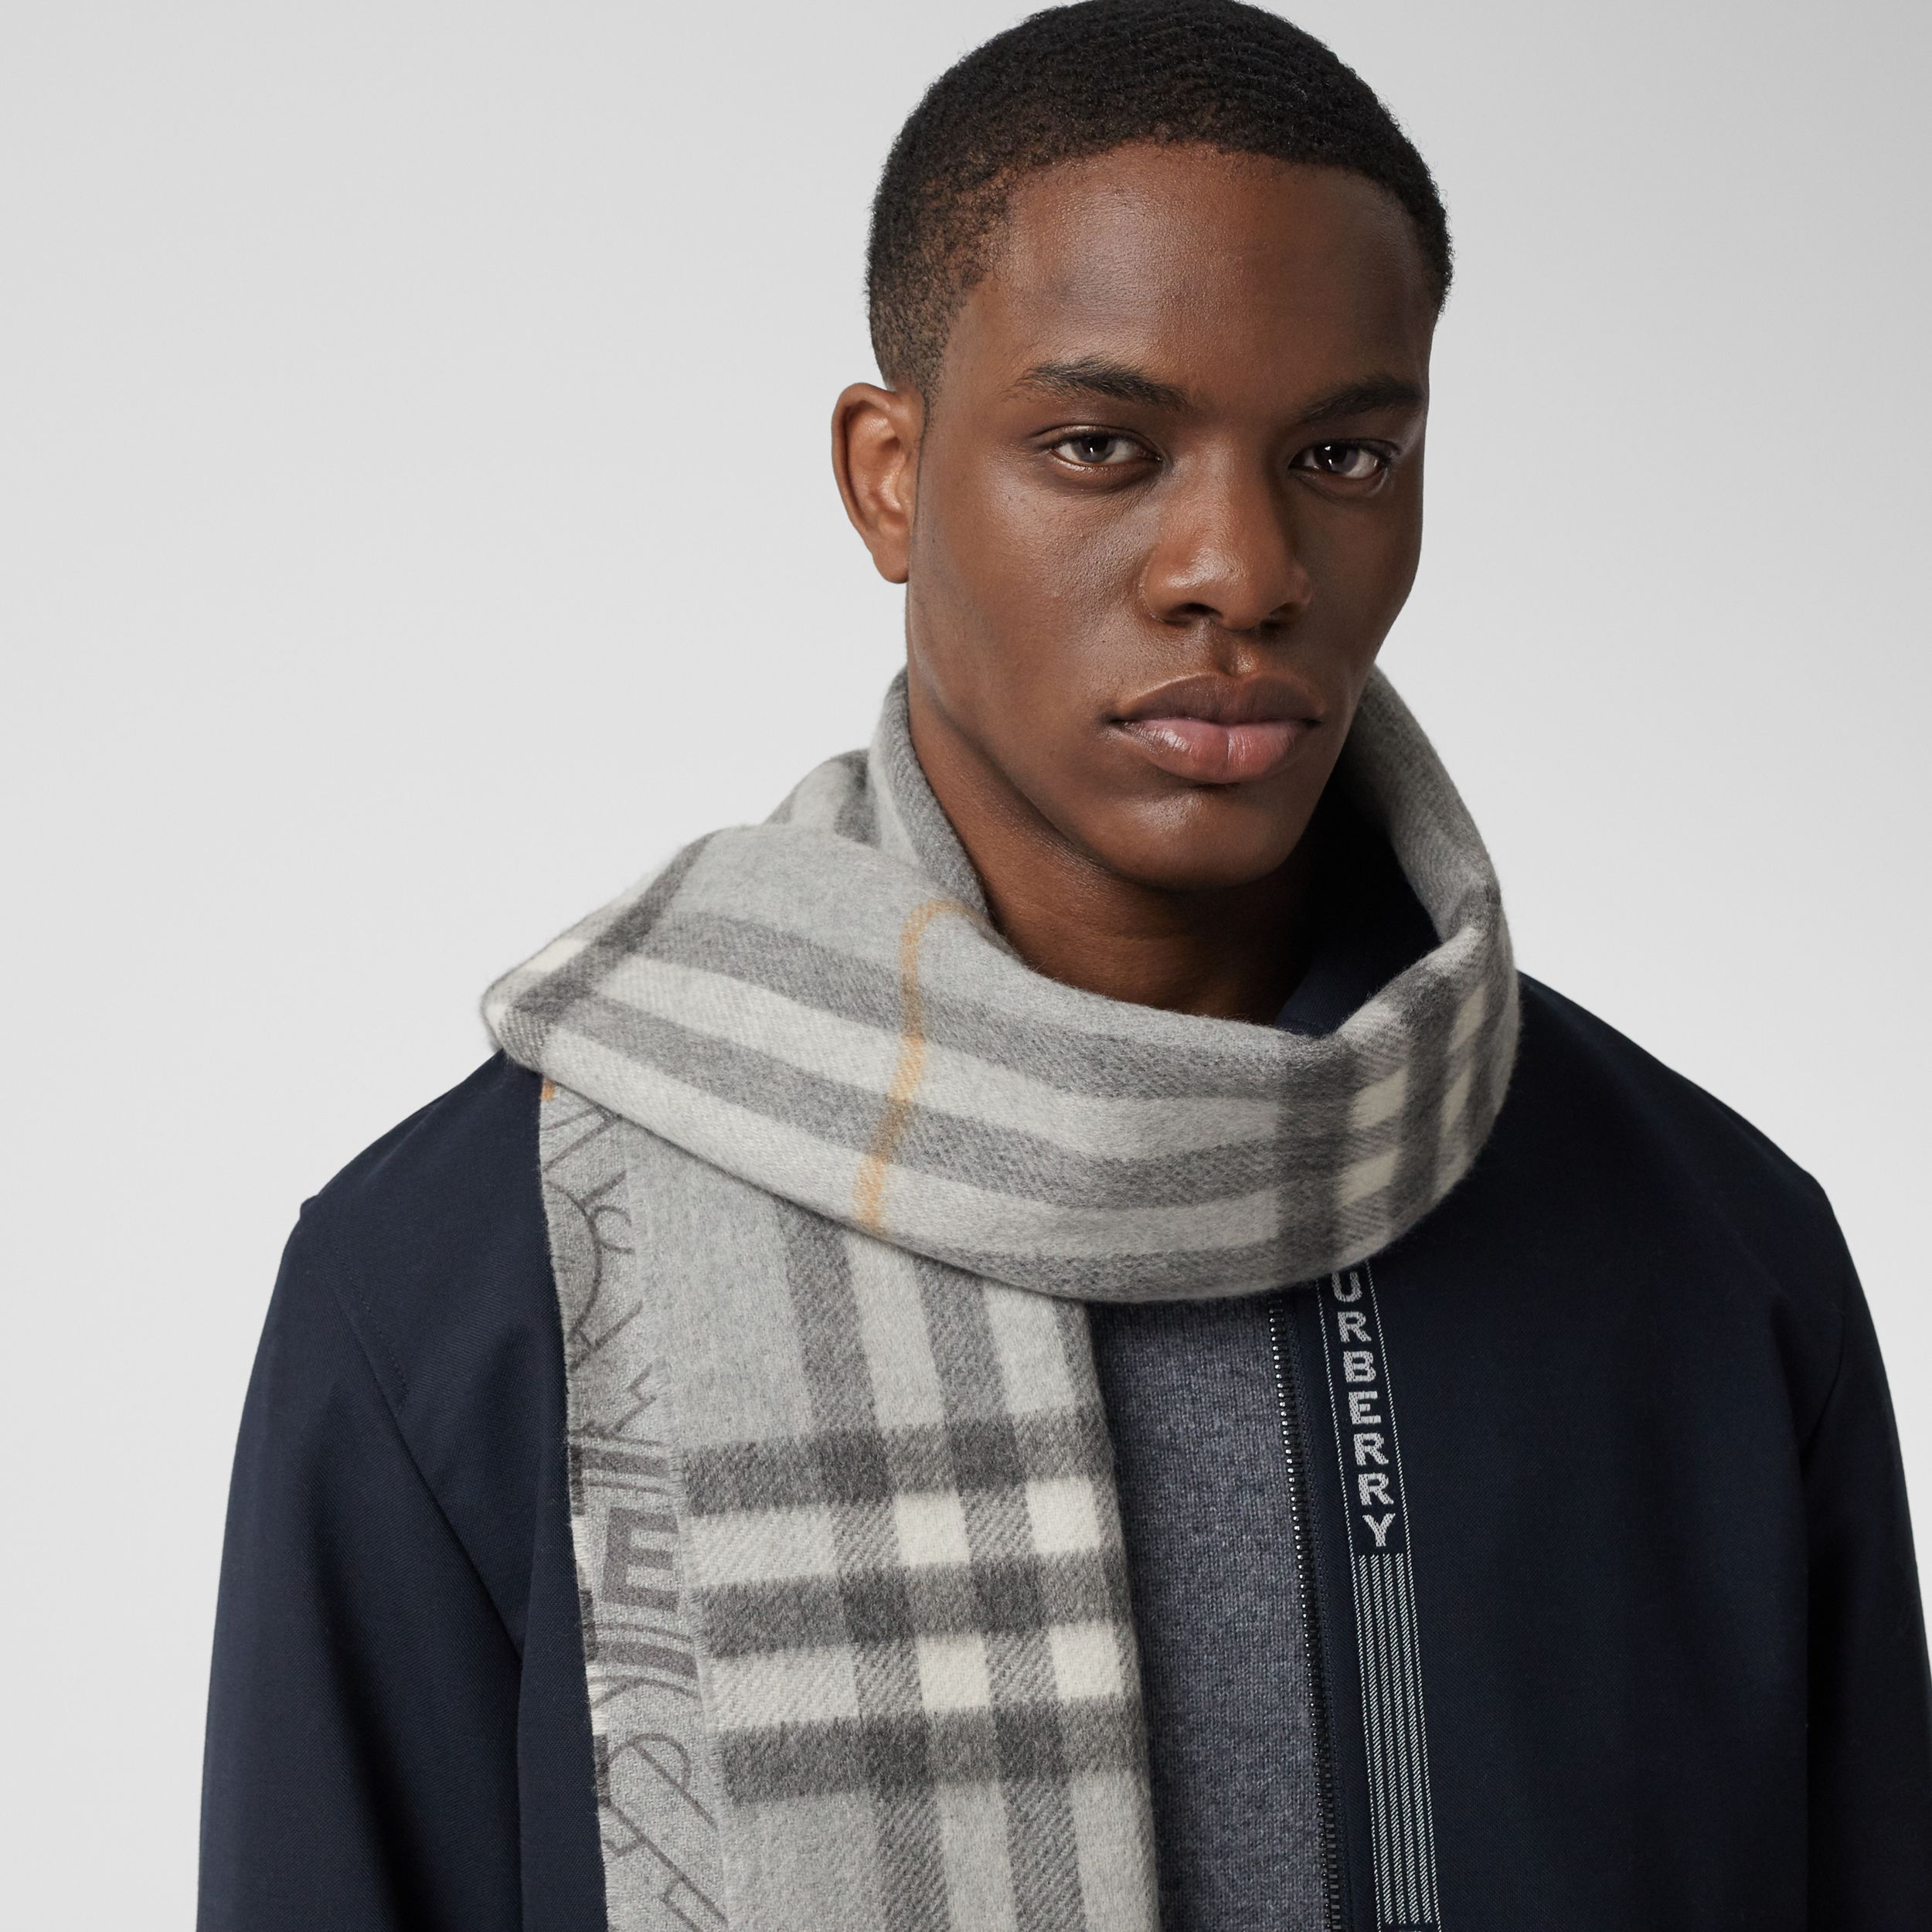 Reversible Check and Monogram Cashmere Scarf in Light Grey | Burberry - 4